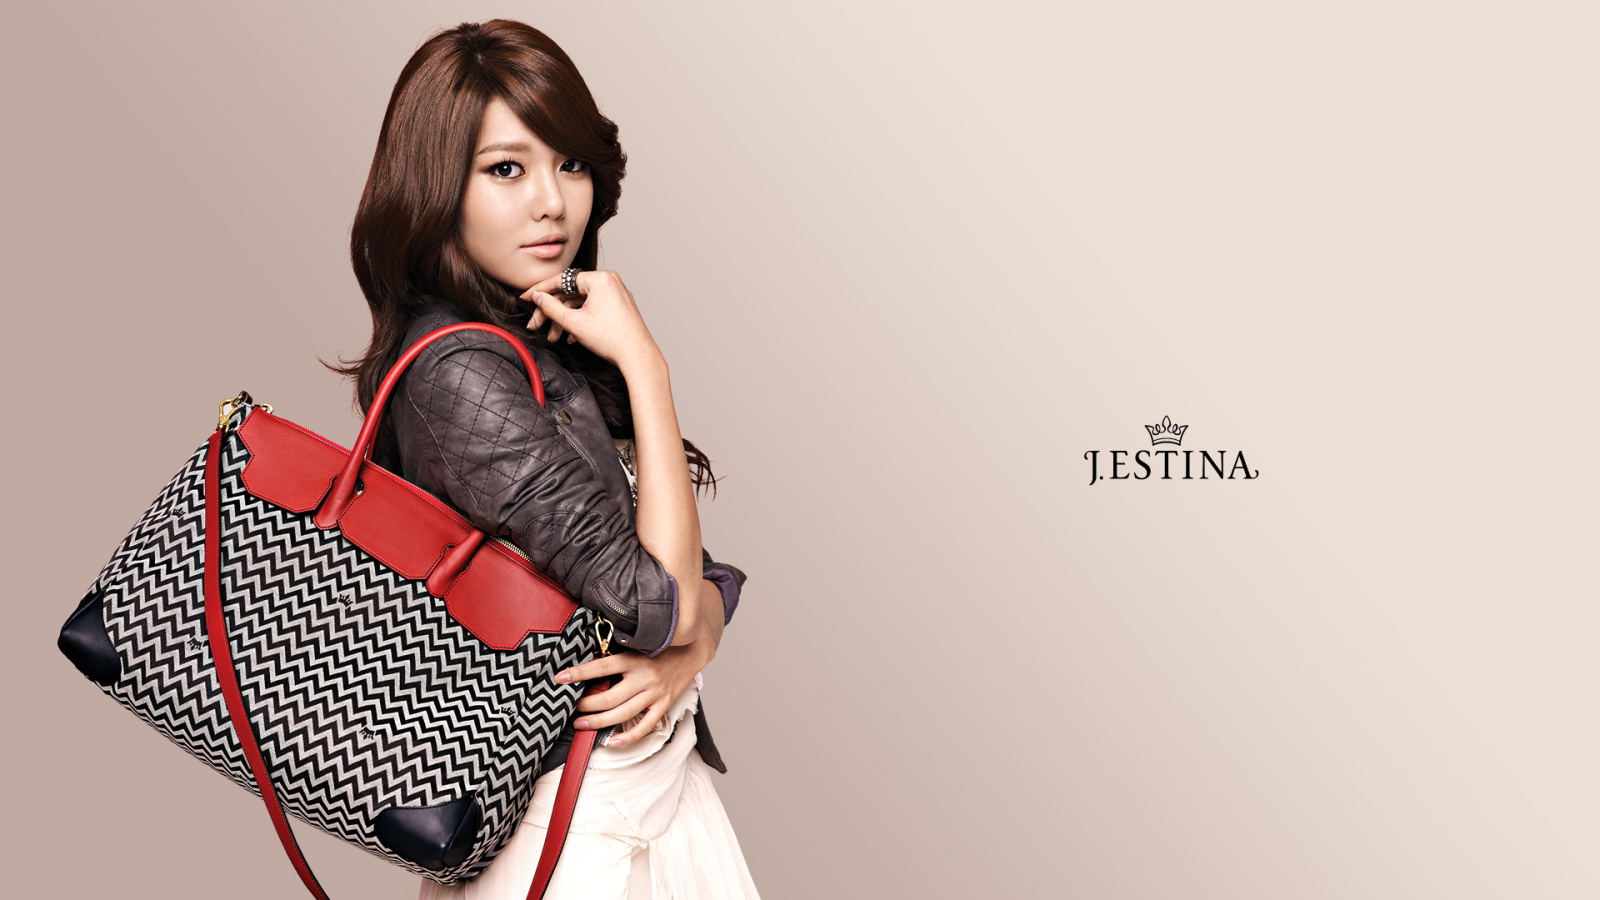 Girls' Generation Sooyoung J.Estina - Girls Generation/SNSD Wallpaper ...